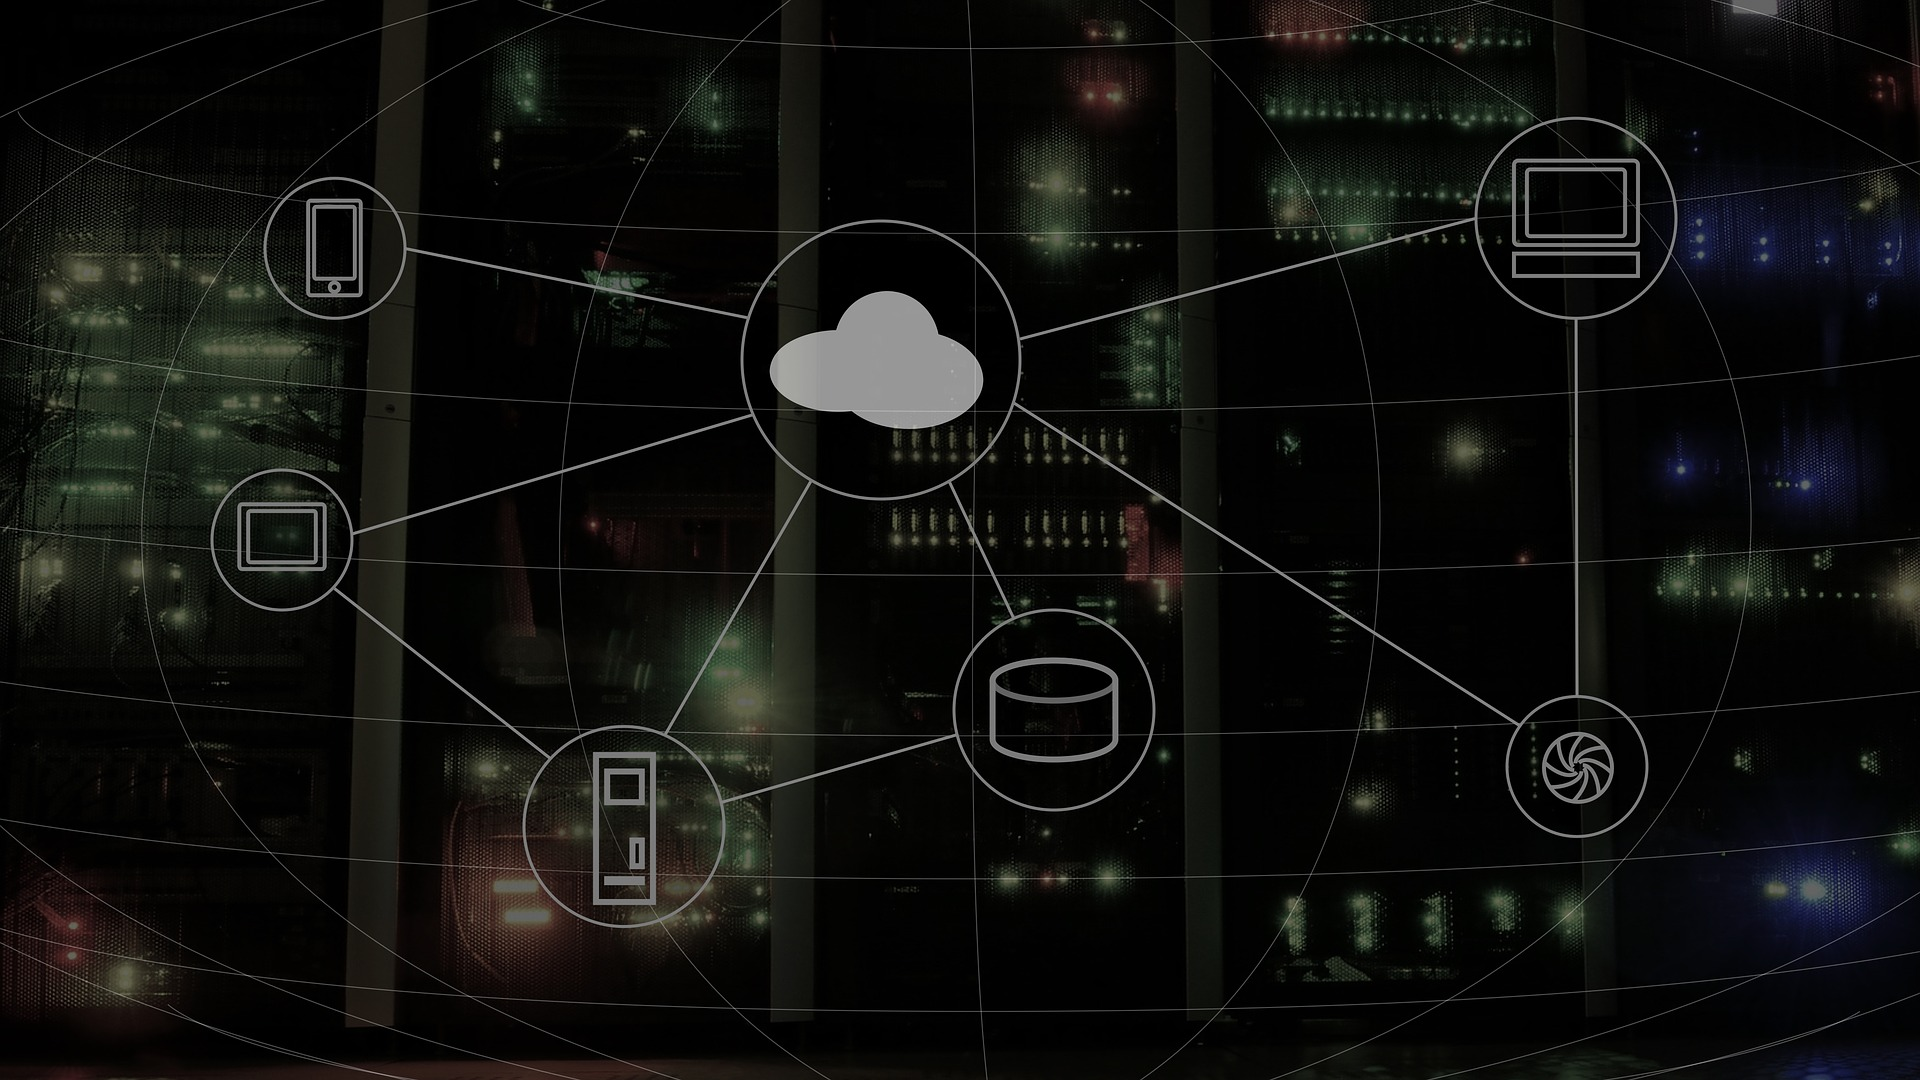 Main visual : Akademiska Hus maximizes bang for its buck with software-defined private cloud deployment